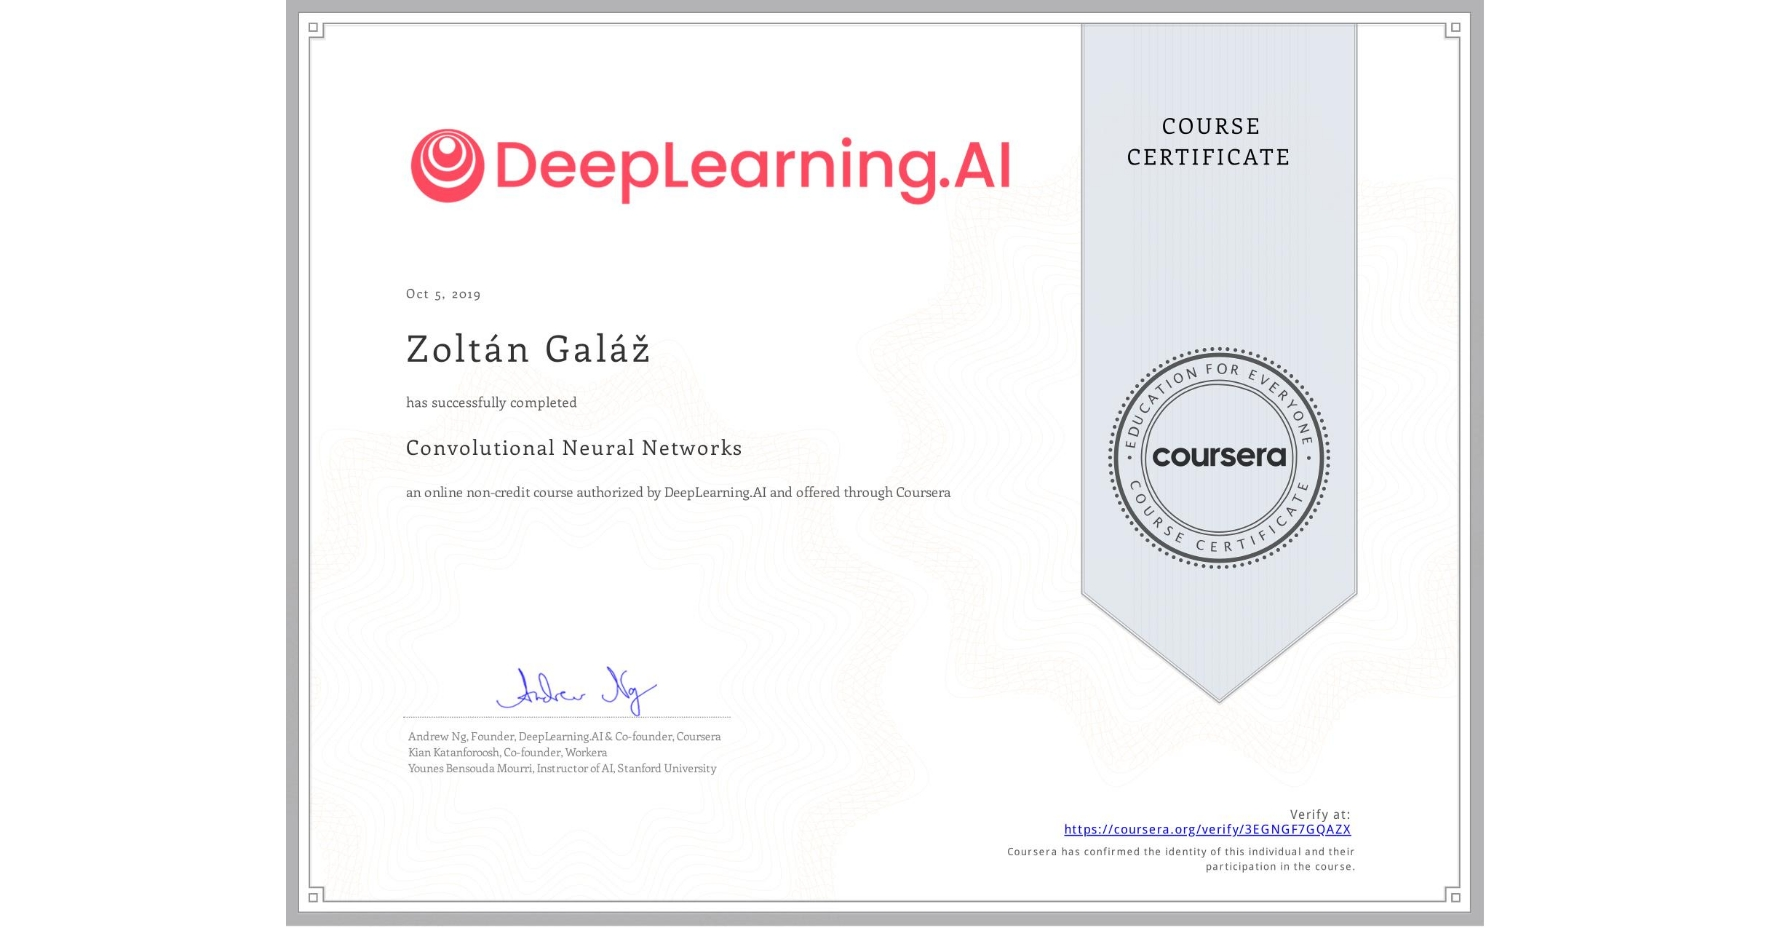 View certificate for Zoltán Galáž, Convolutional Neural Networks, an online non-credit course authorized by DeepLearning.AI and offered through Coursera